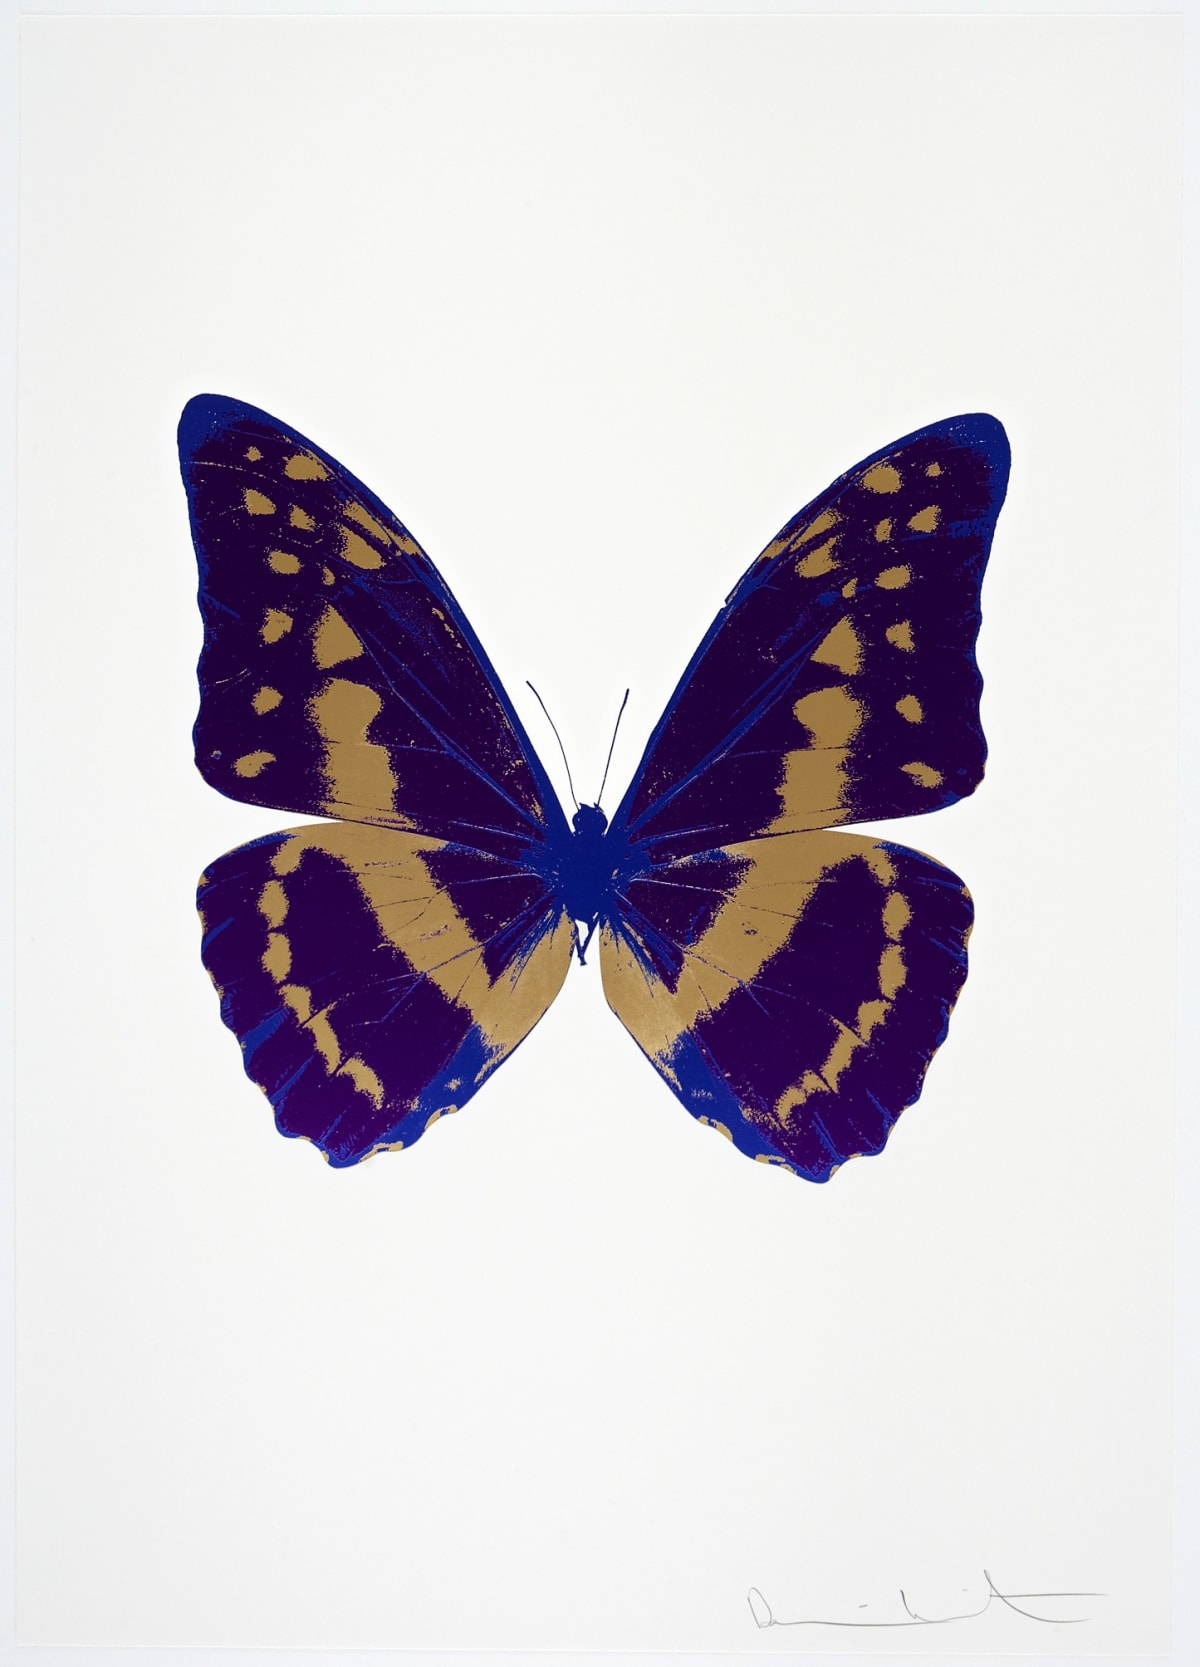 Damien Hirst The Souls III - Imperial Purple/Hazy Gold/Westminster Blue, 2010 3 colour foil block on 300gsm Arches 88 archival paper. Signed and numbered. Published by Paul Stolper and Other Criteria 72 x 51cm OC7913 / 660-16 Edition of 15